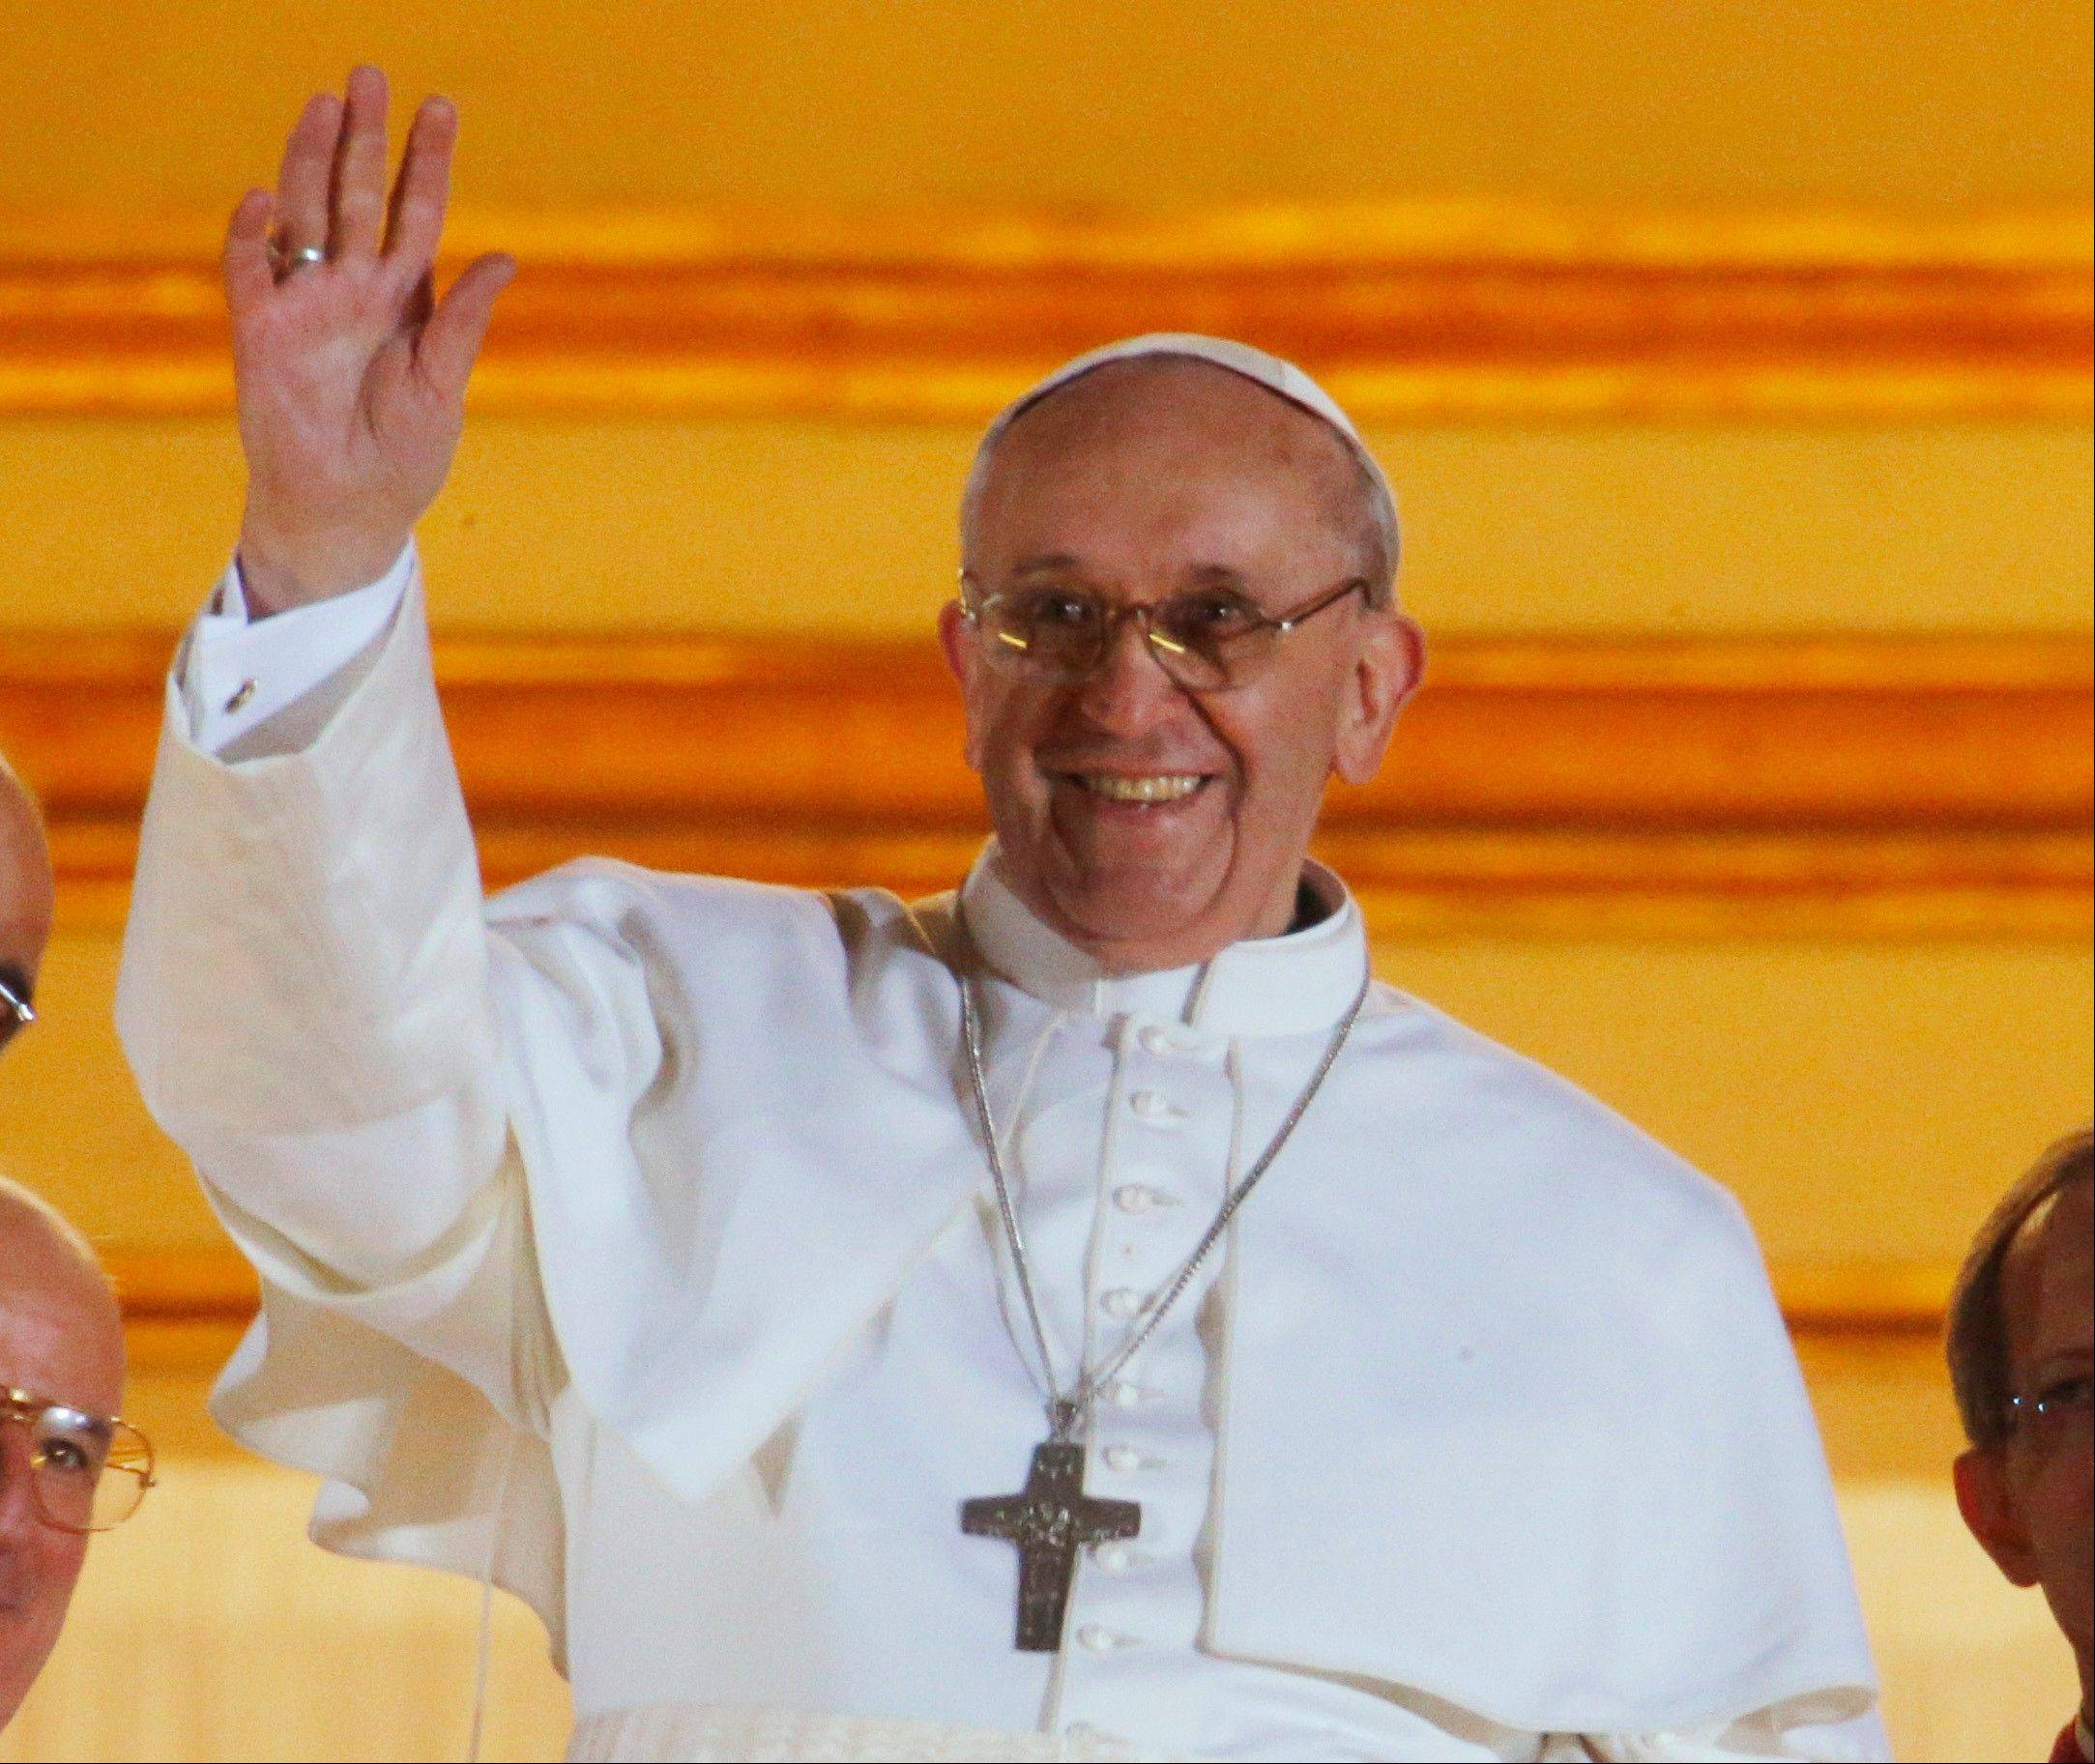 Pope Francis waves to the crowd from the central balcony of St. Peter�s Basilica at the Vatican